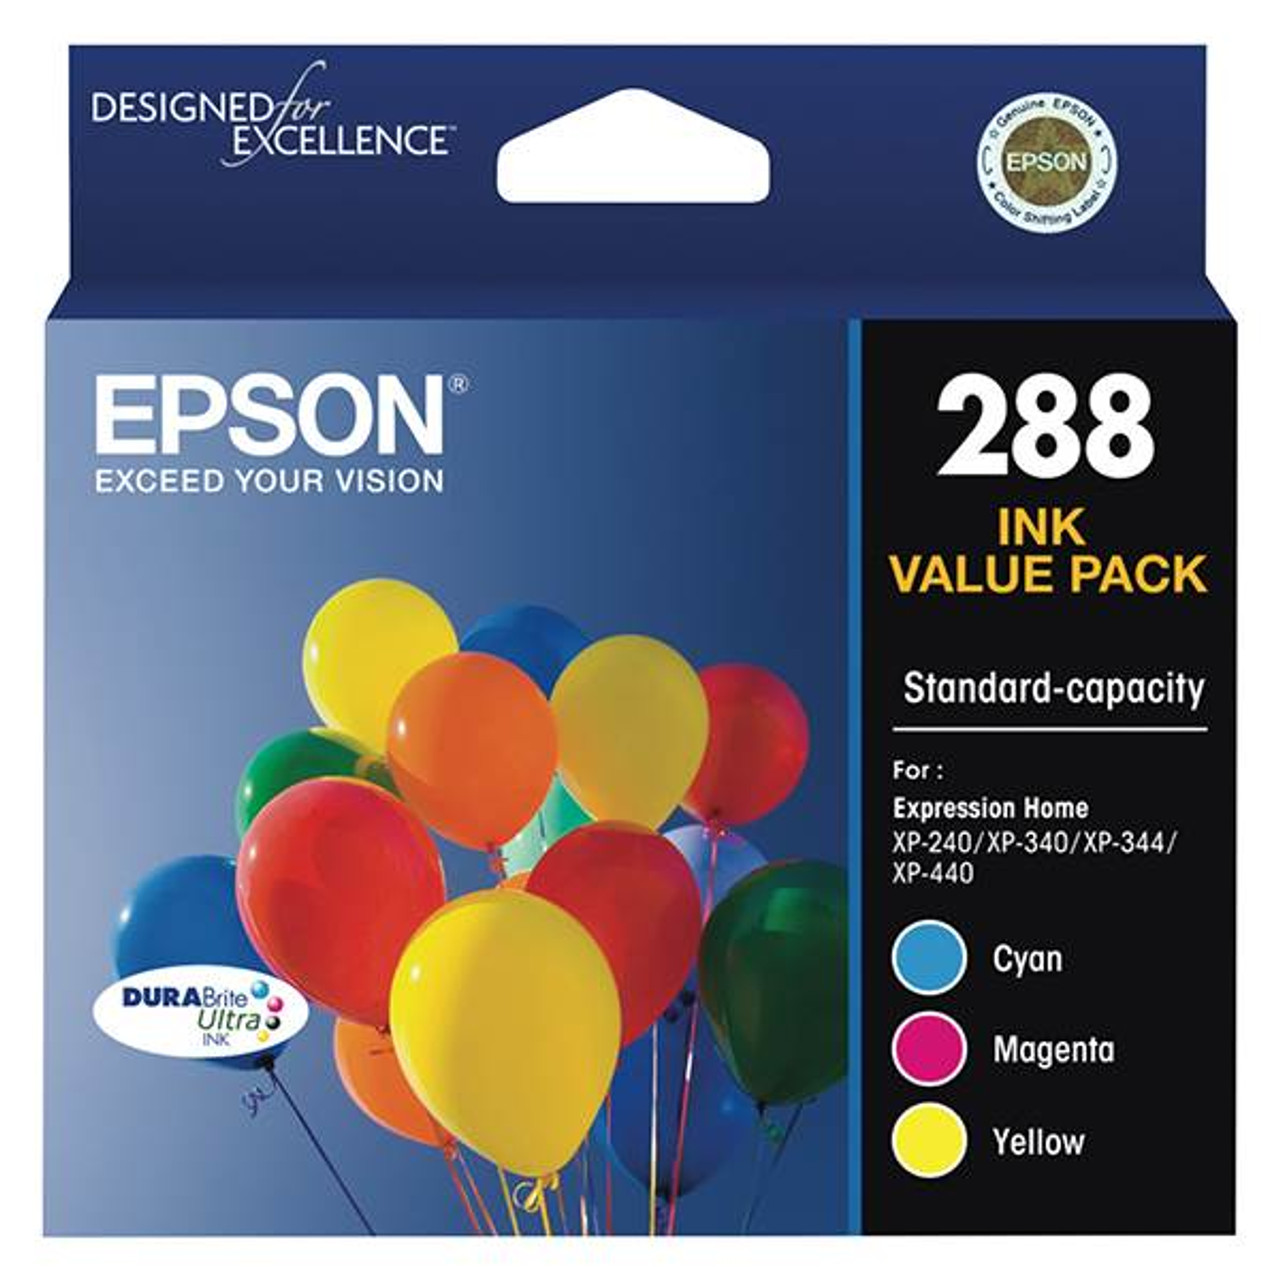 Image for Epson 288 Standard Capacity DURABrite Ultra CMY Colour Ink Cartridge Pack CX Computer Superstore